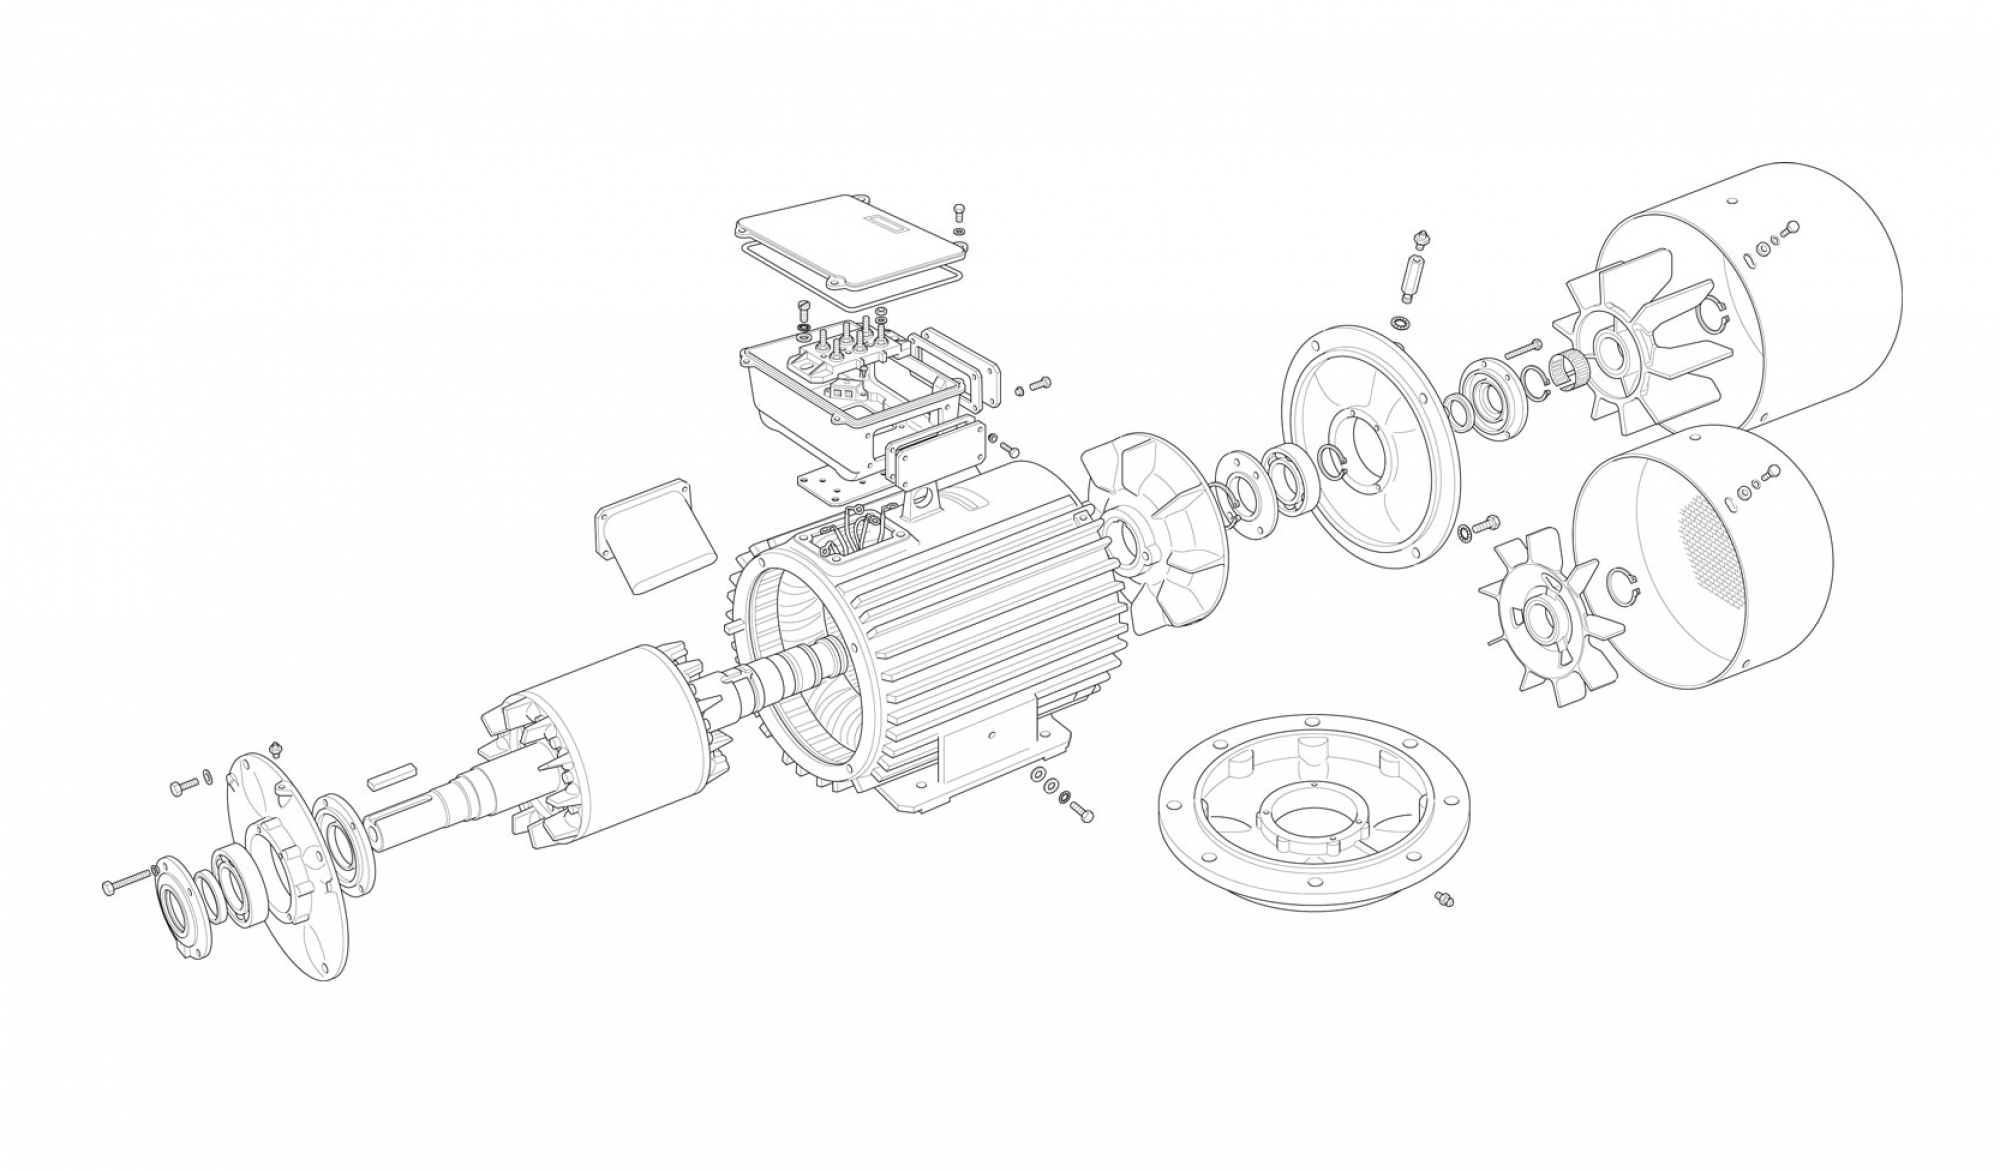 Simulation and construction of an induction machine (generator) for high RPM